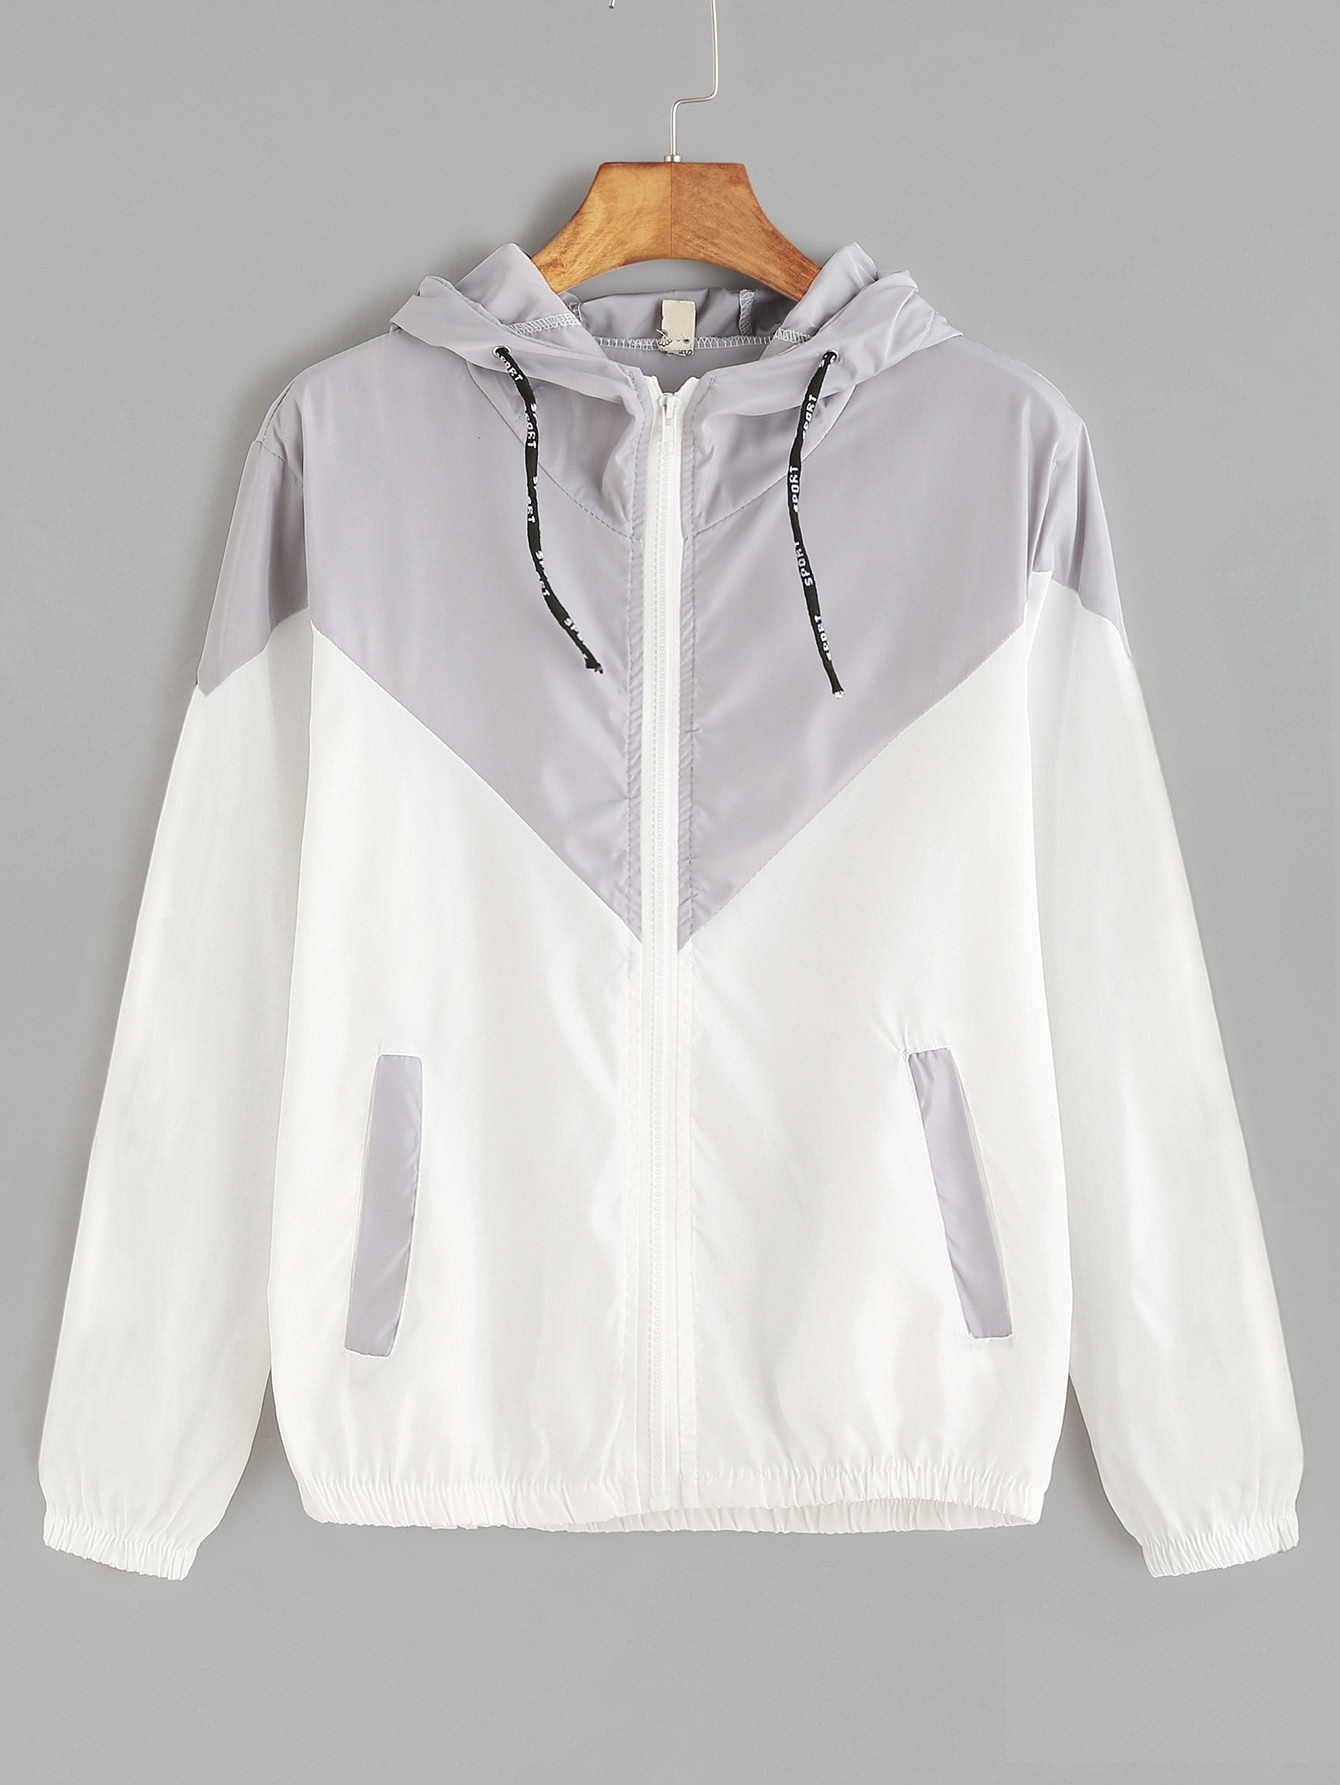 Contrast Zip Up Drawstring Hooded Jacket champion hooded jacket